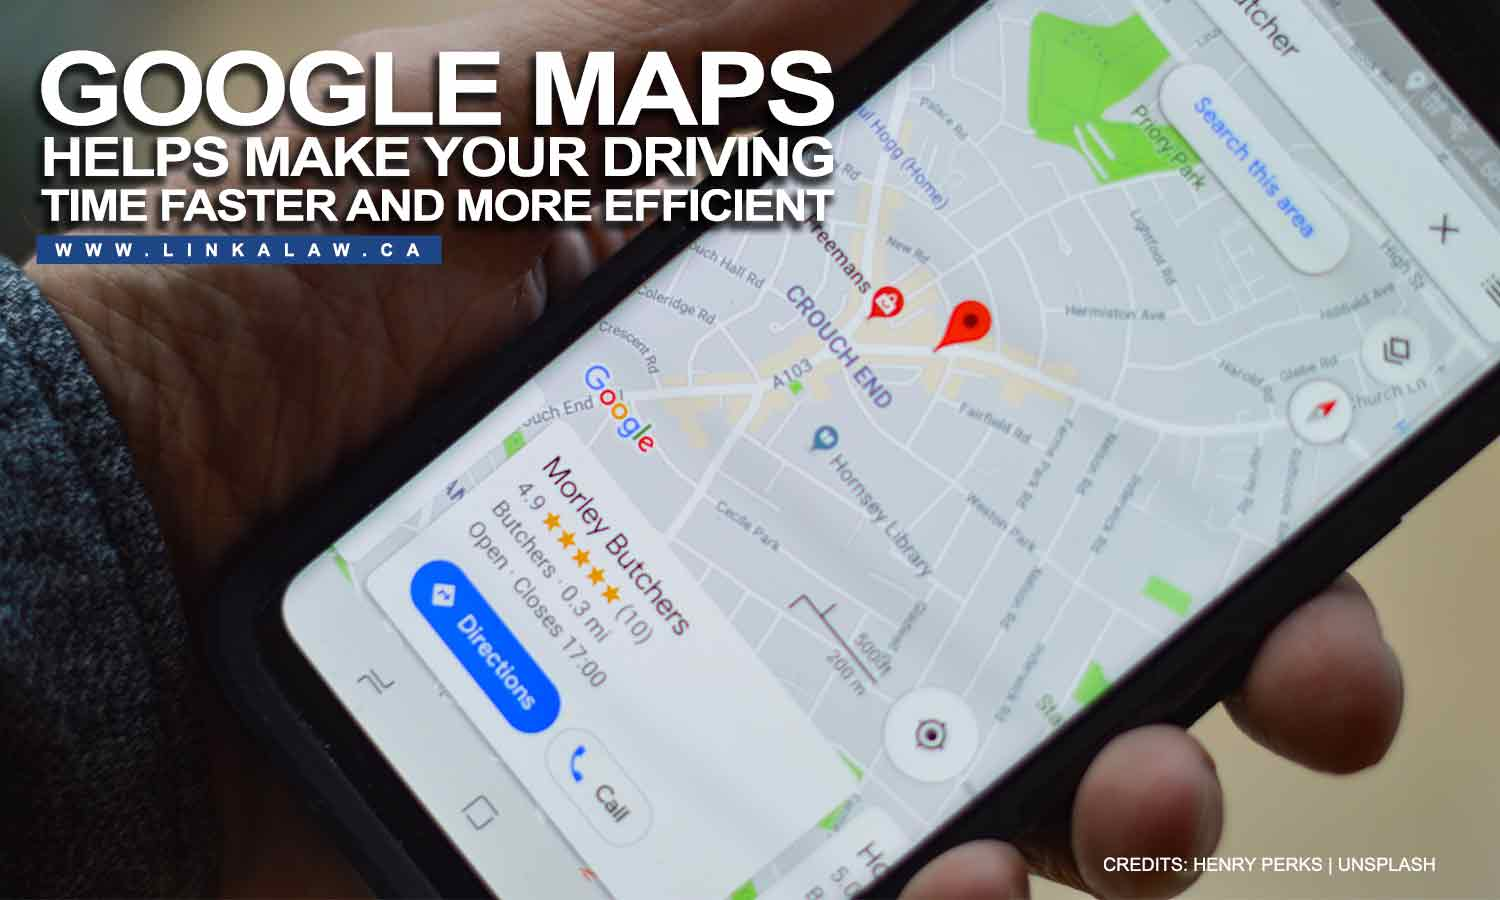 Google Maps helps make your driving time faster and more efficient